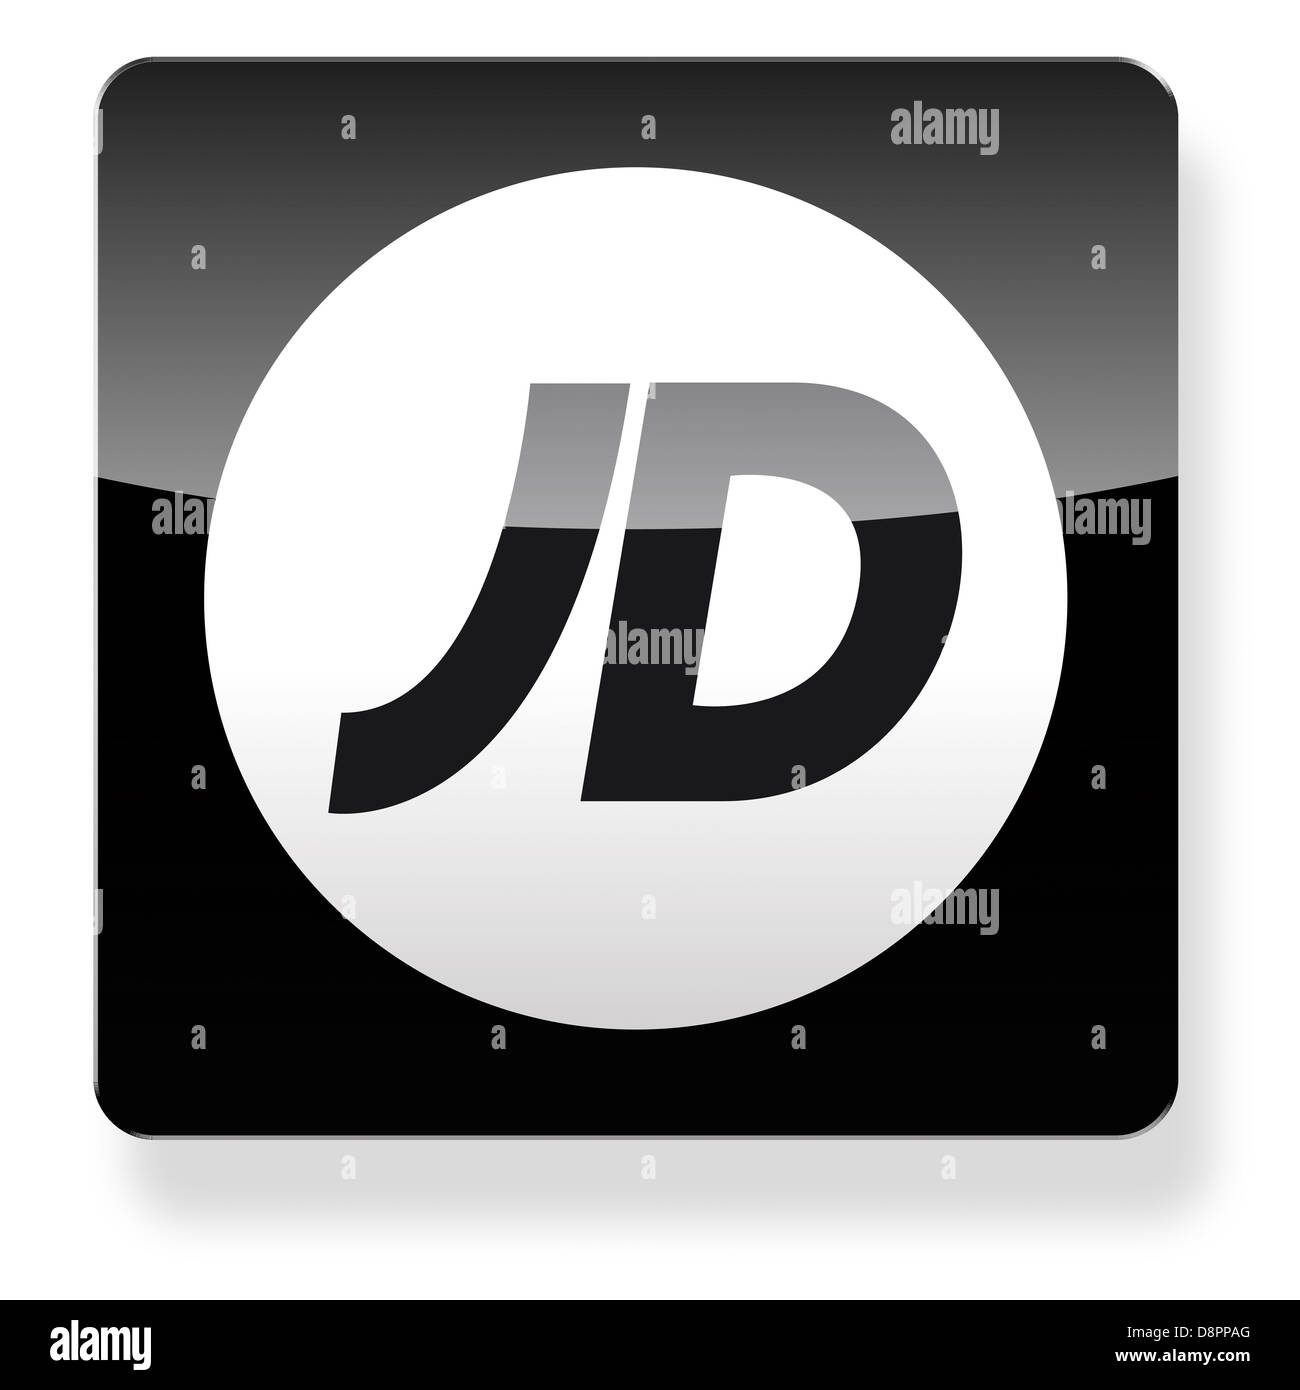 jd sports logo high resolution stock photography and images alamy https www alamy com stock photo jd sports logo as an app icon clipping path included 57048840 html